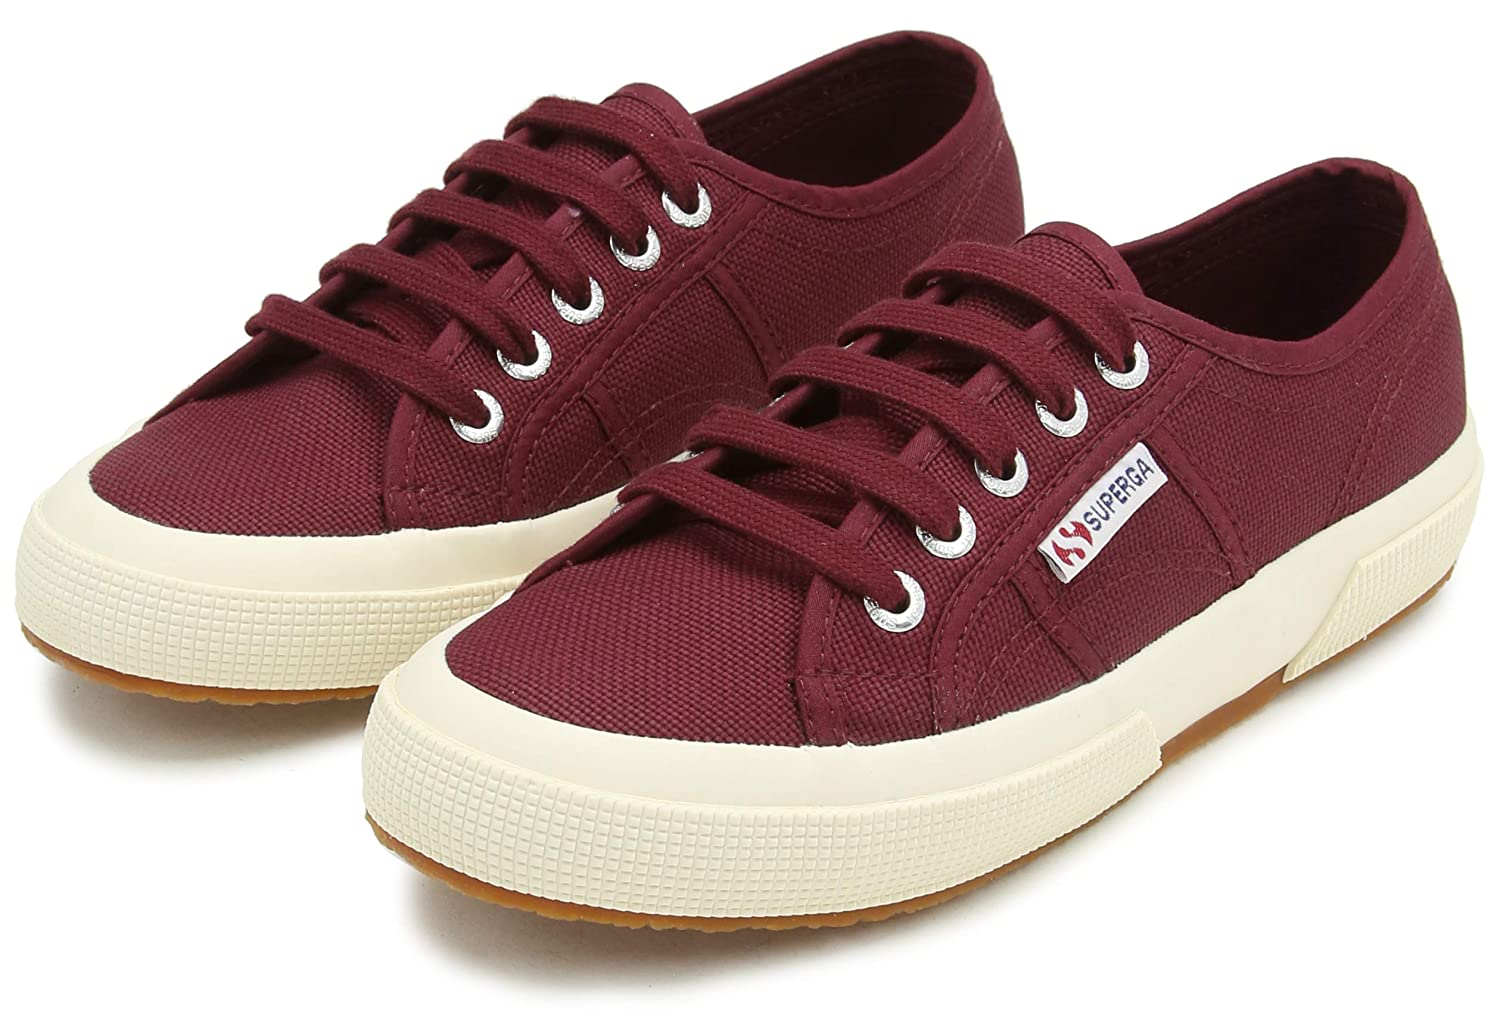 cotu Adulte Classic 2750 Mixte Baskets Superga 5AwUzxpU